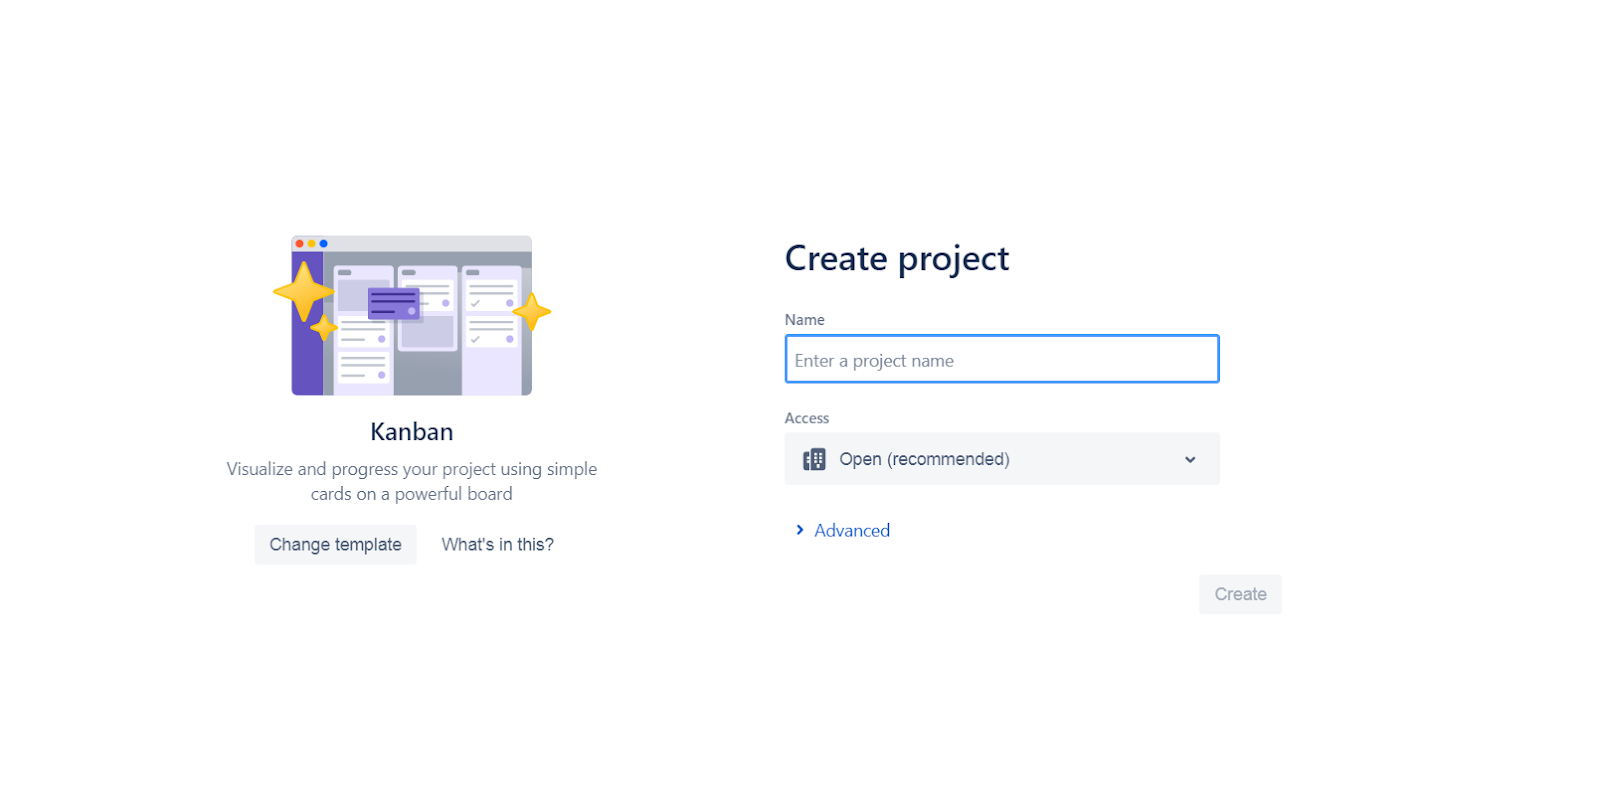 jira software, jira projects, first steps, project in jira, agile methodology, kanban